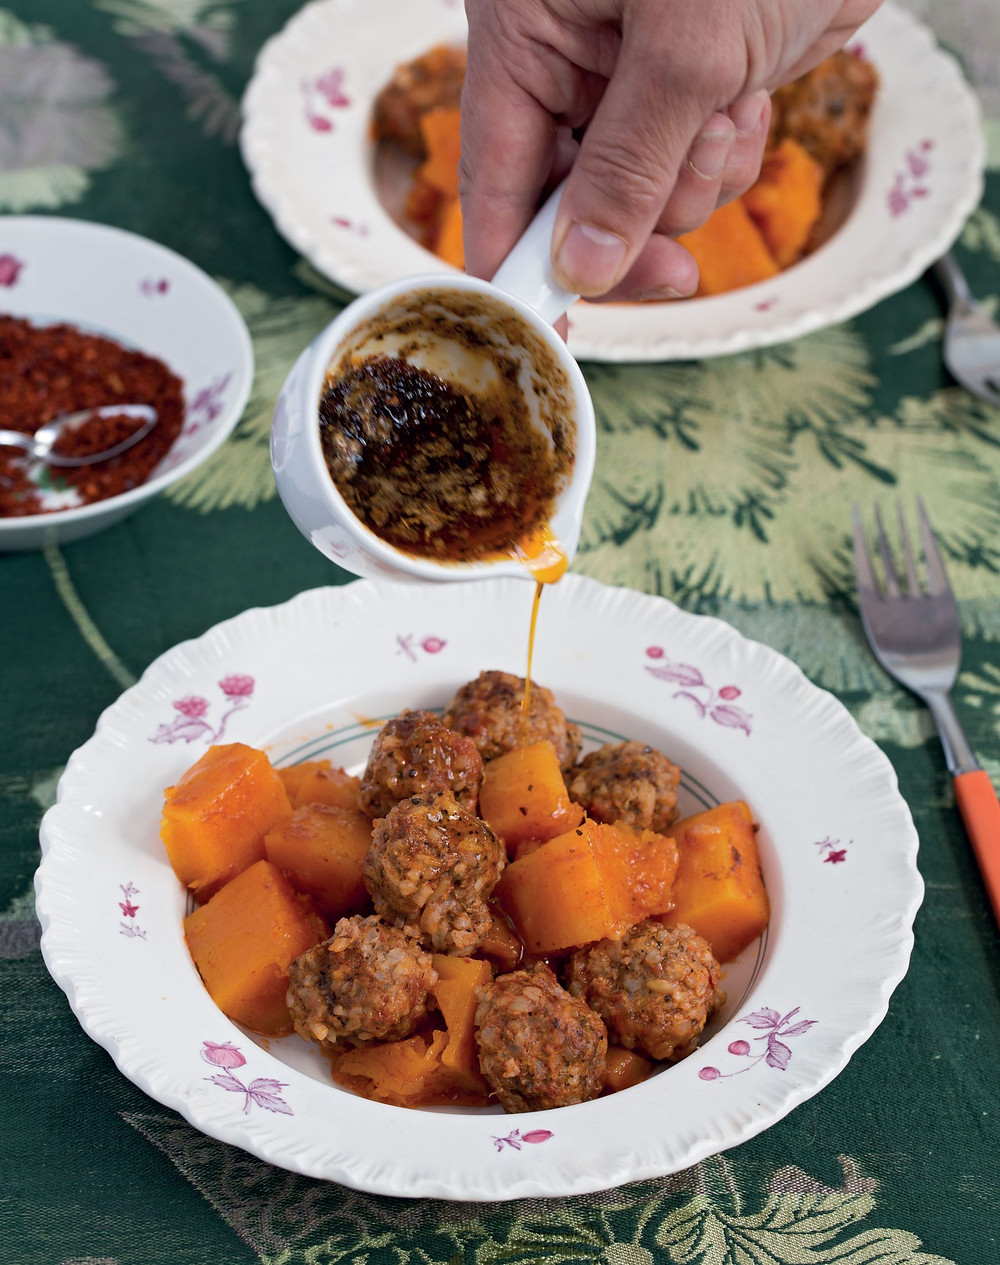 Meatballs with pumpkin and spice butter (c) David Hagerman